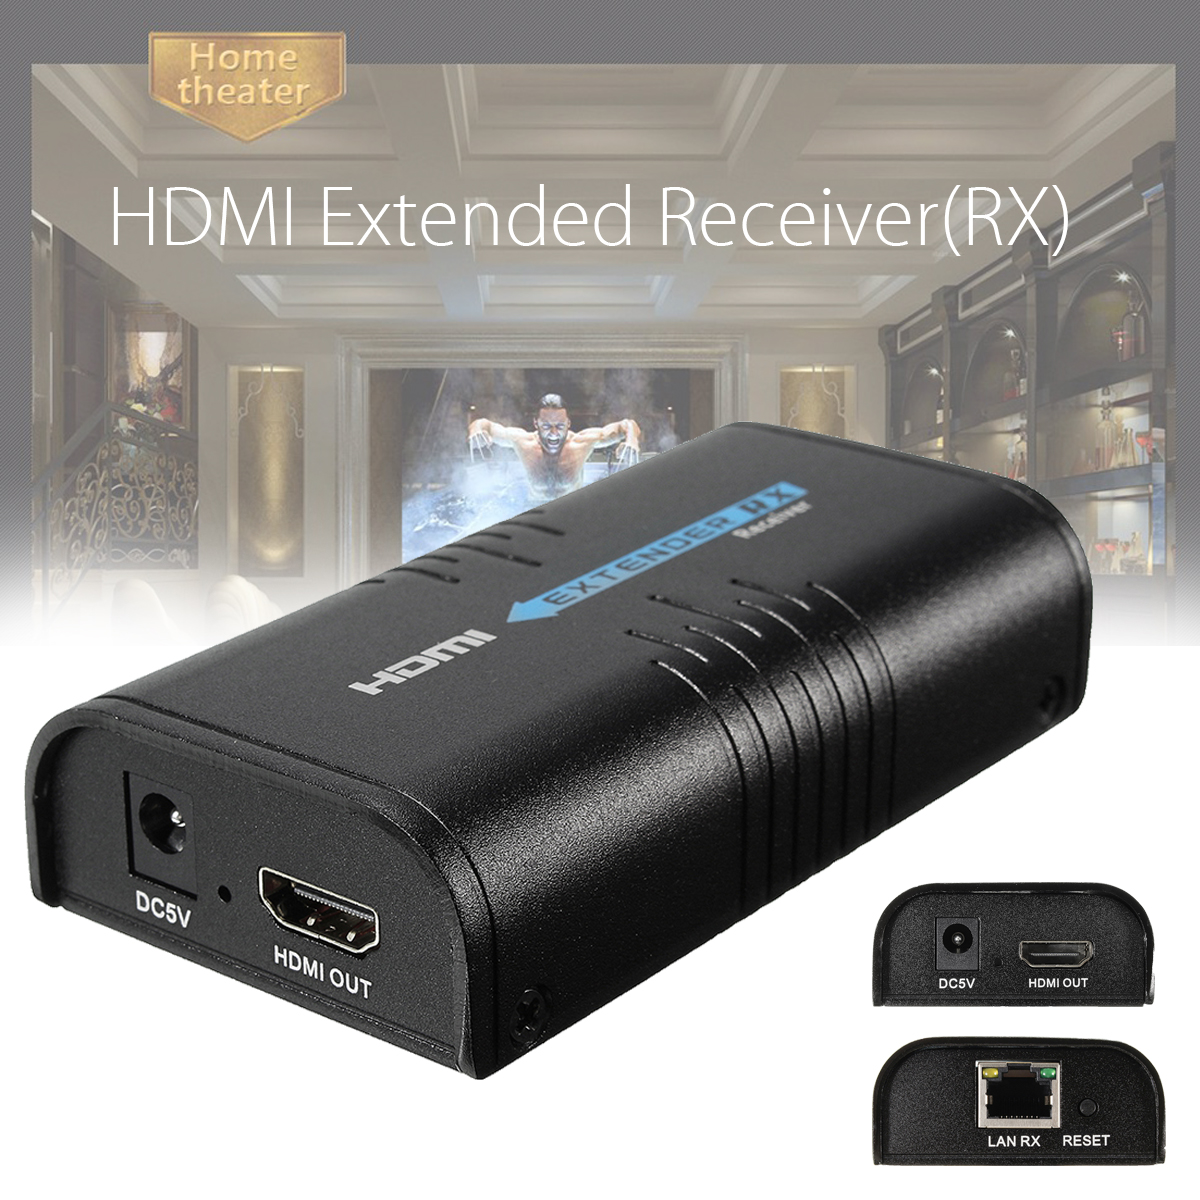 HDMI Extender RX Receiver 100-120m Support 1080P Over Cat5 Cat5e Cat6